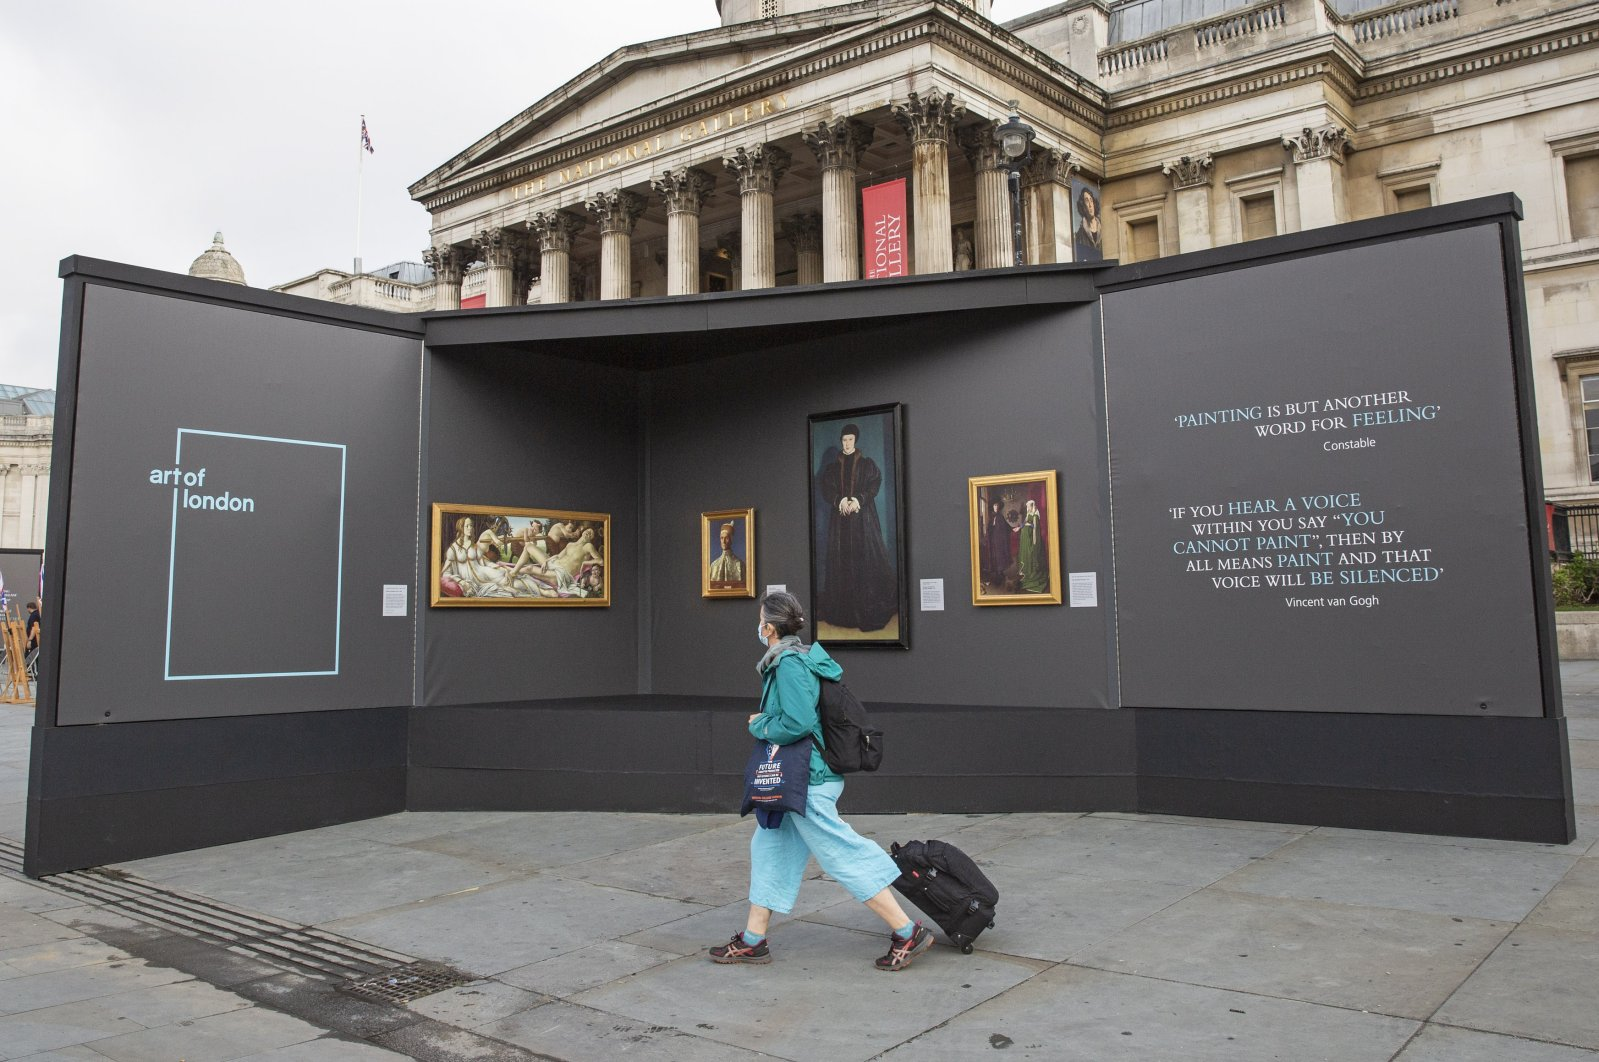 A member of the public visits an outdoor gallery in Trafalgar Square, London, as part of the Inside Out festival. (DPA Photo)